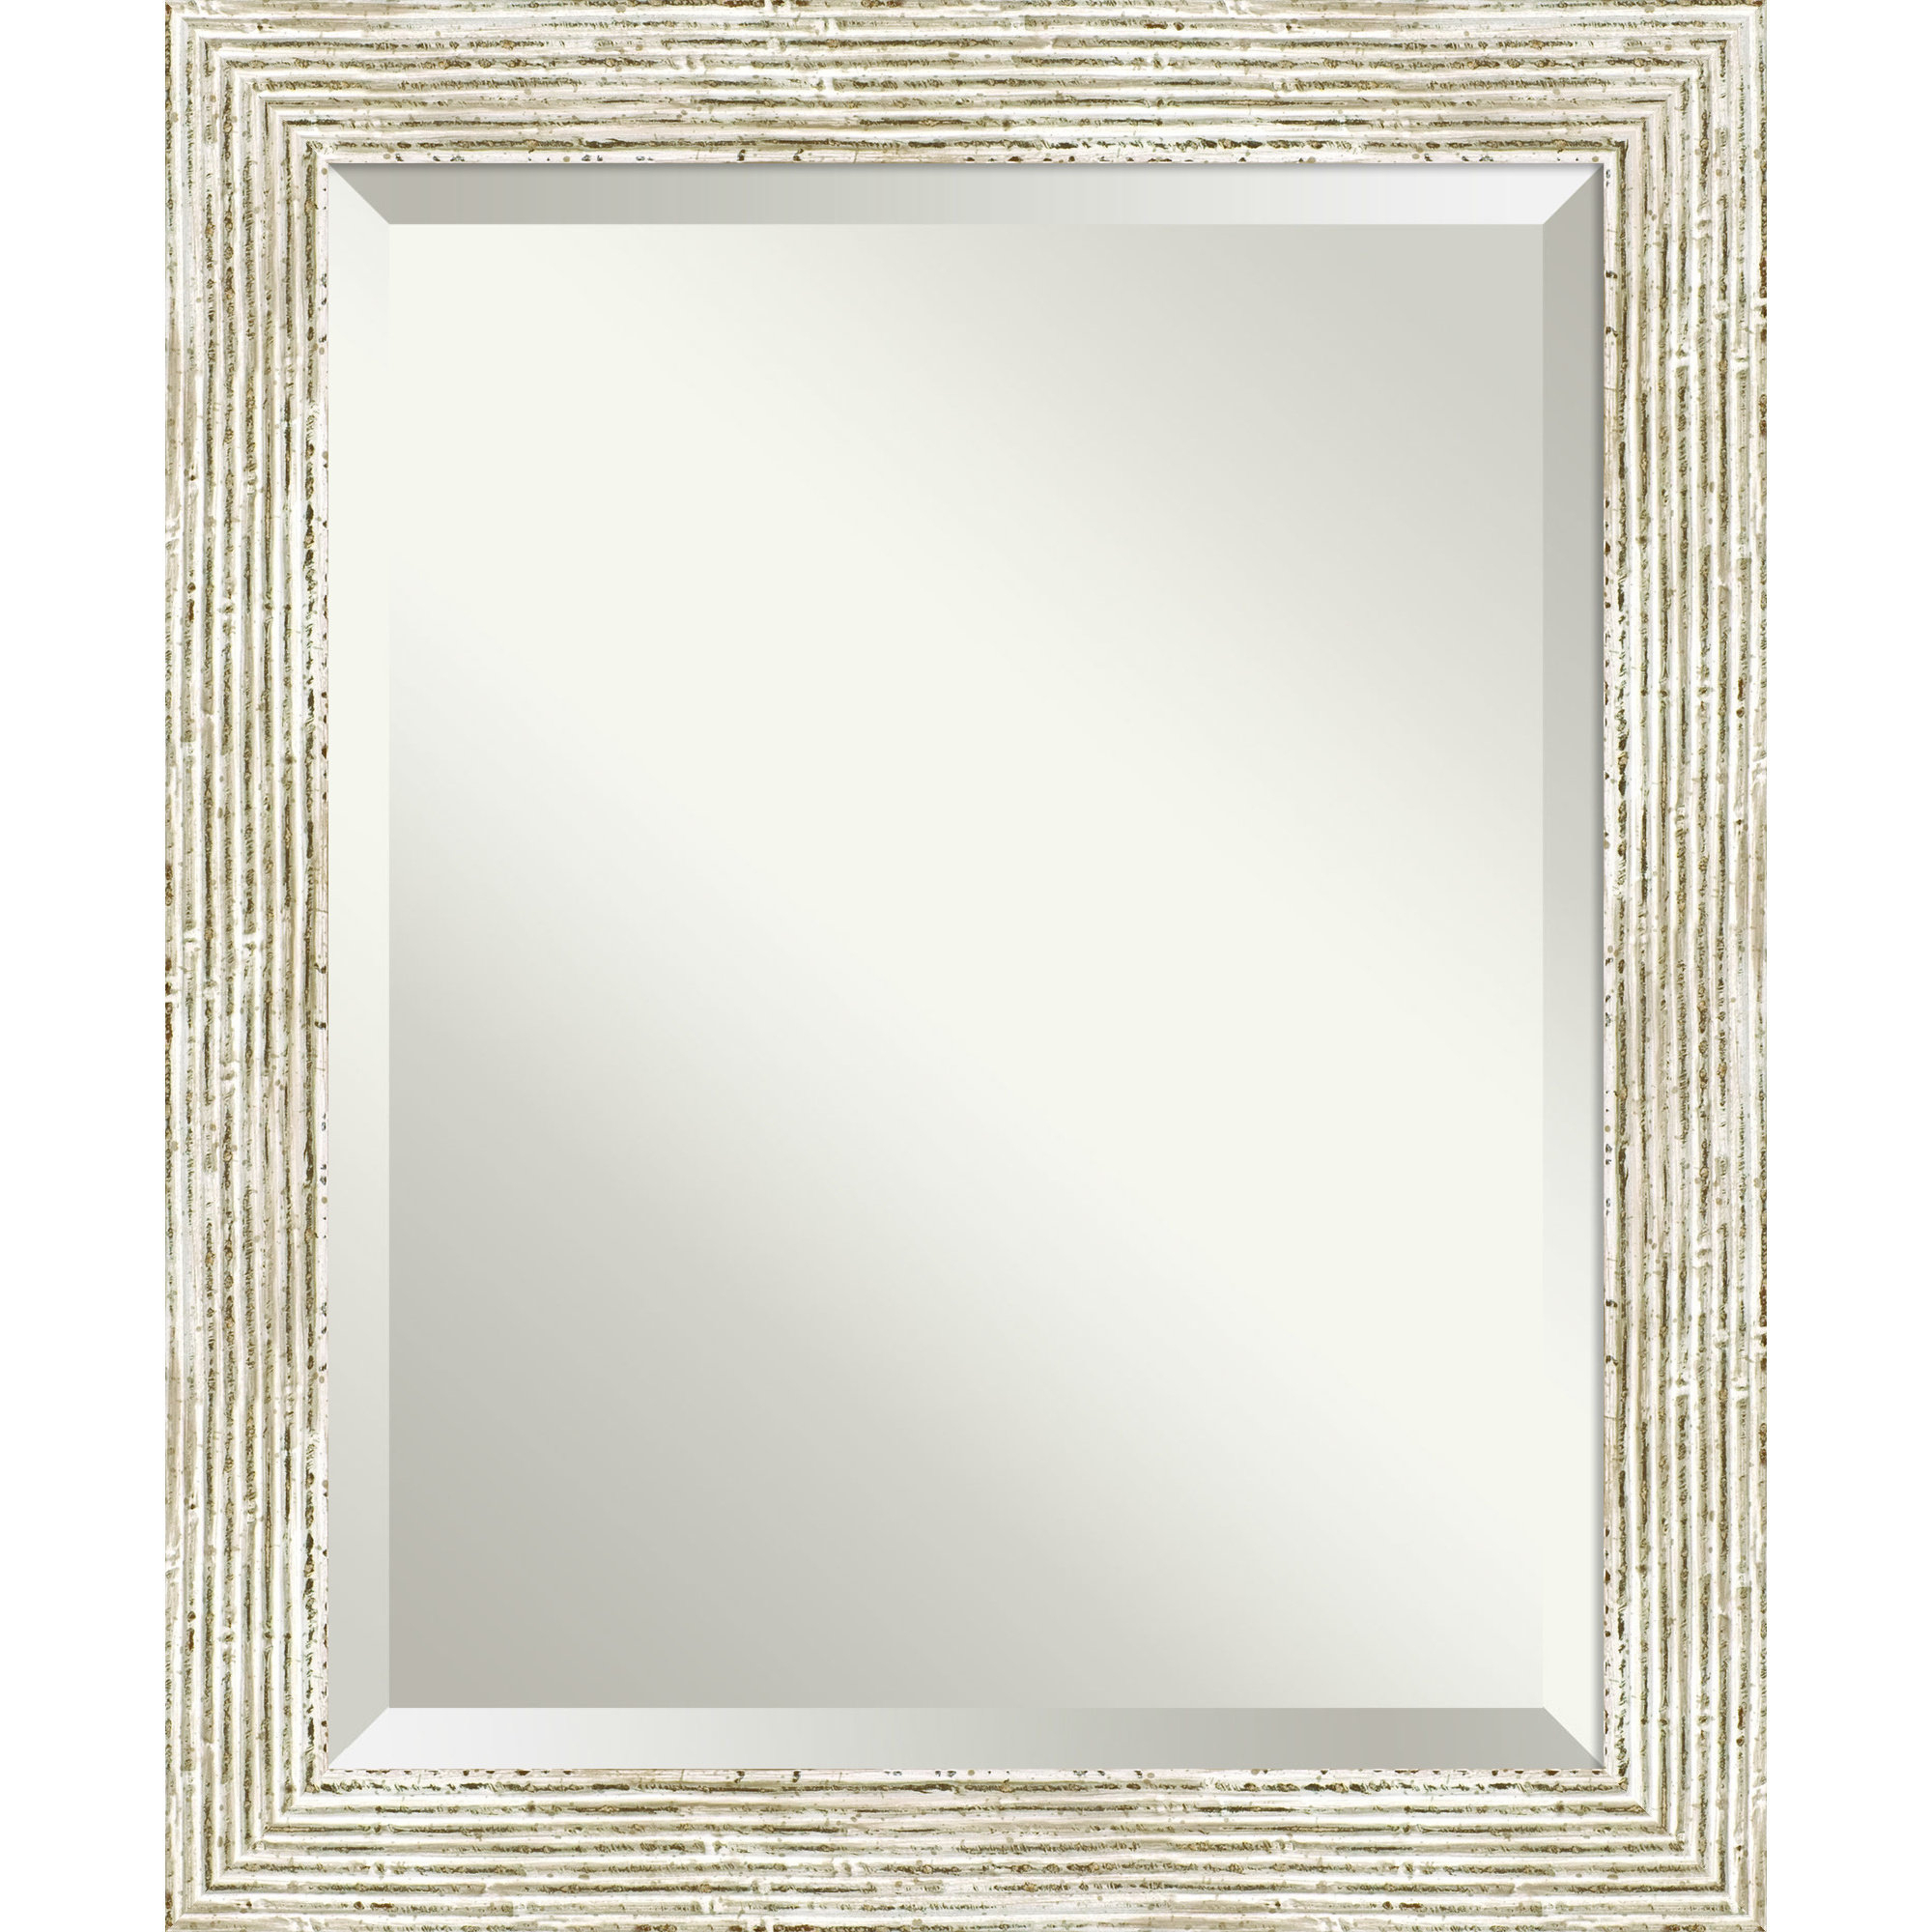 Preferred Accent Rectangle White Wood Framed Medium Wall Mirror Within Epinal Shabby Elegance Wall Mirrors (View 10 of 20)